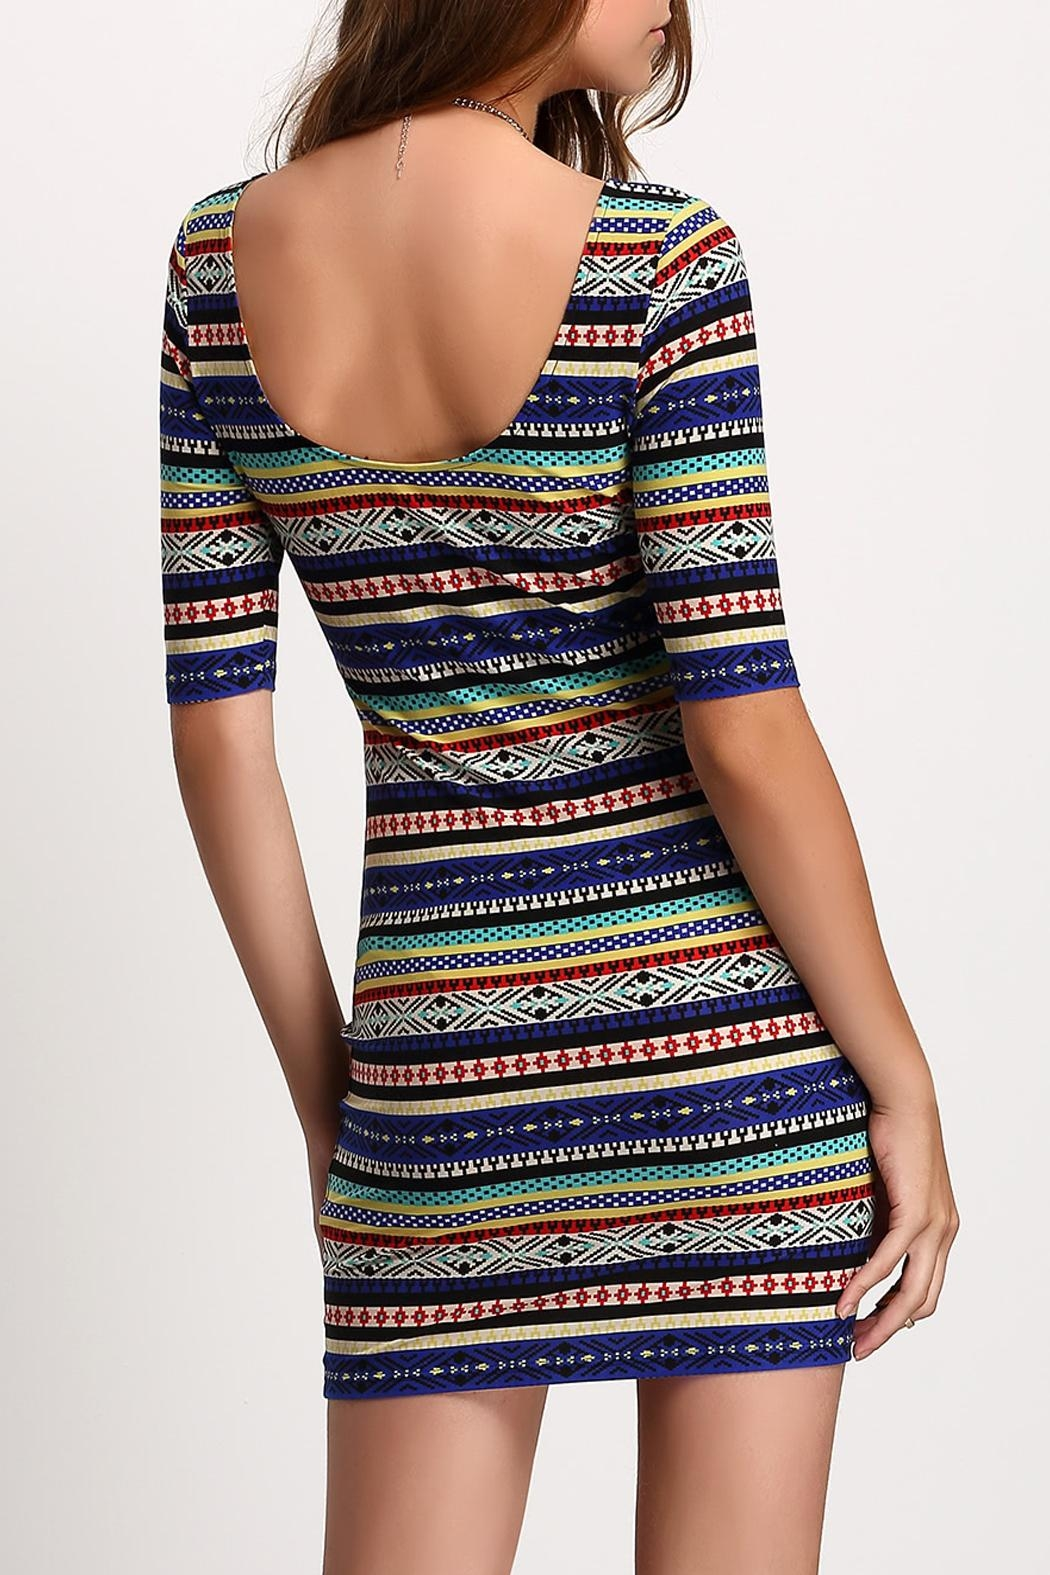 House of Atelier Print Bodycon Dress - Side Cropped Image